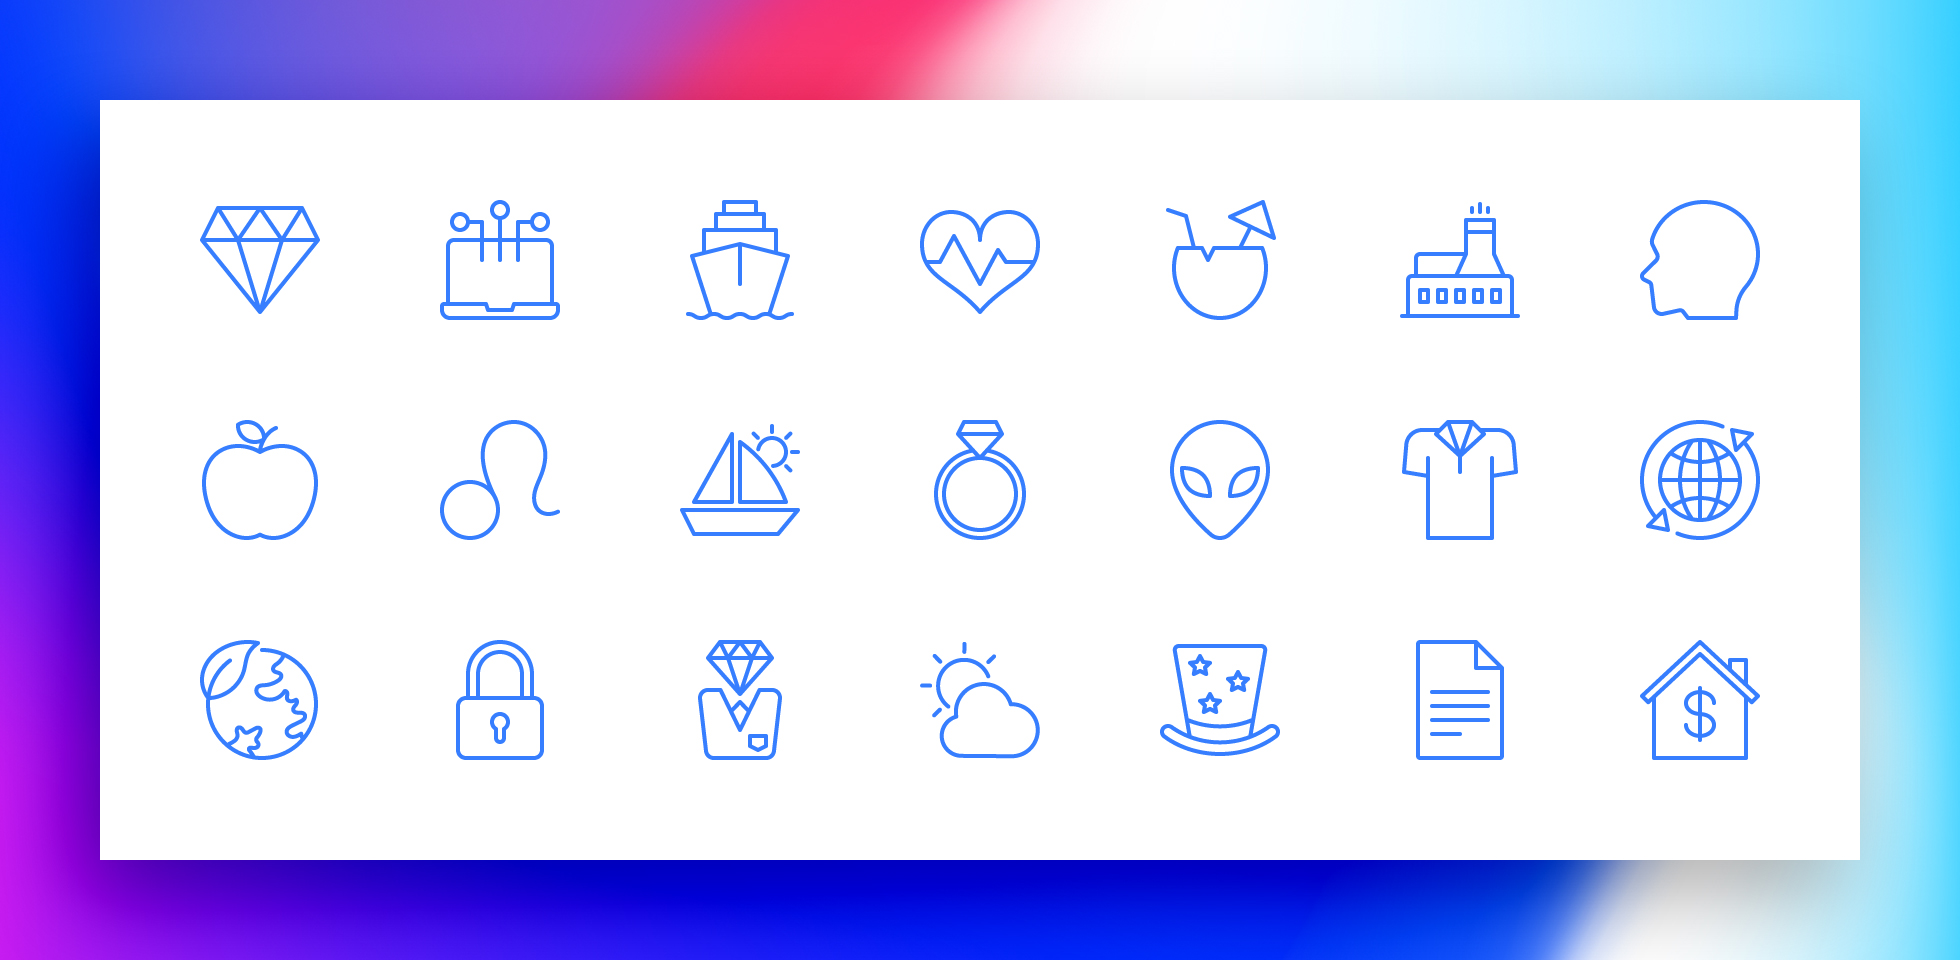 Free Download: Sleekons Minimal Icons